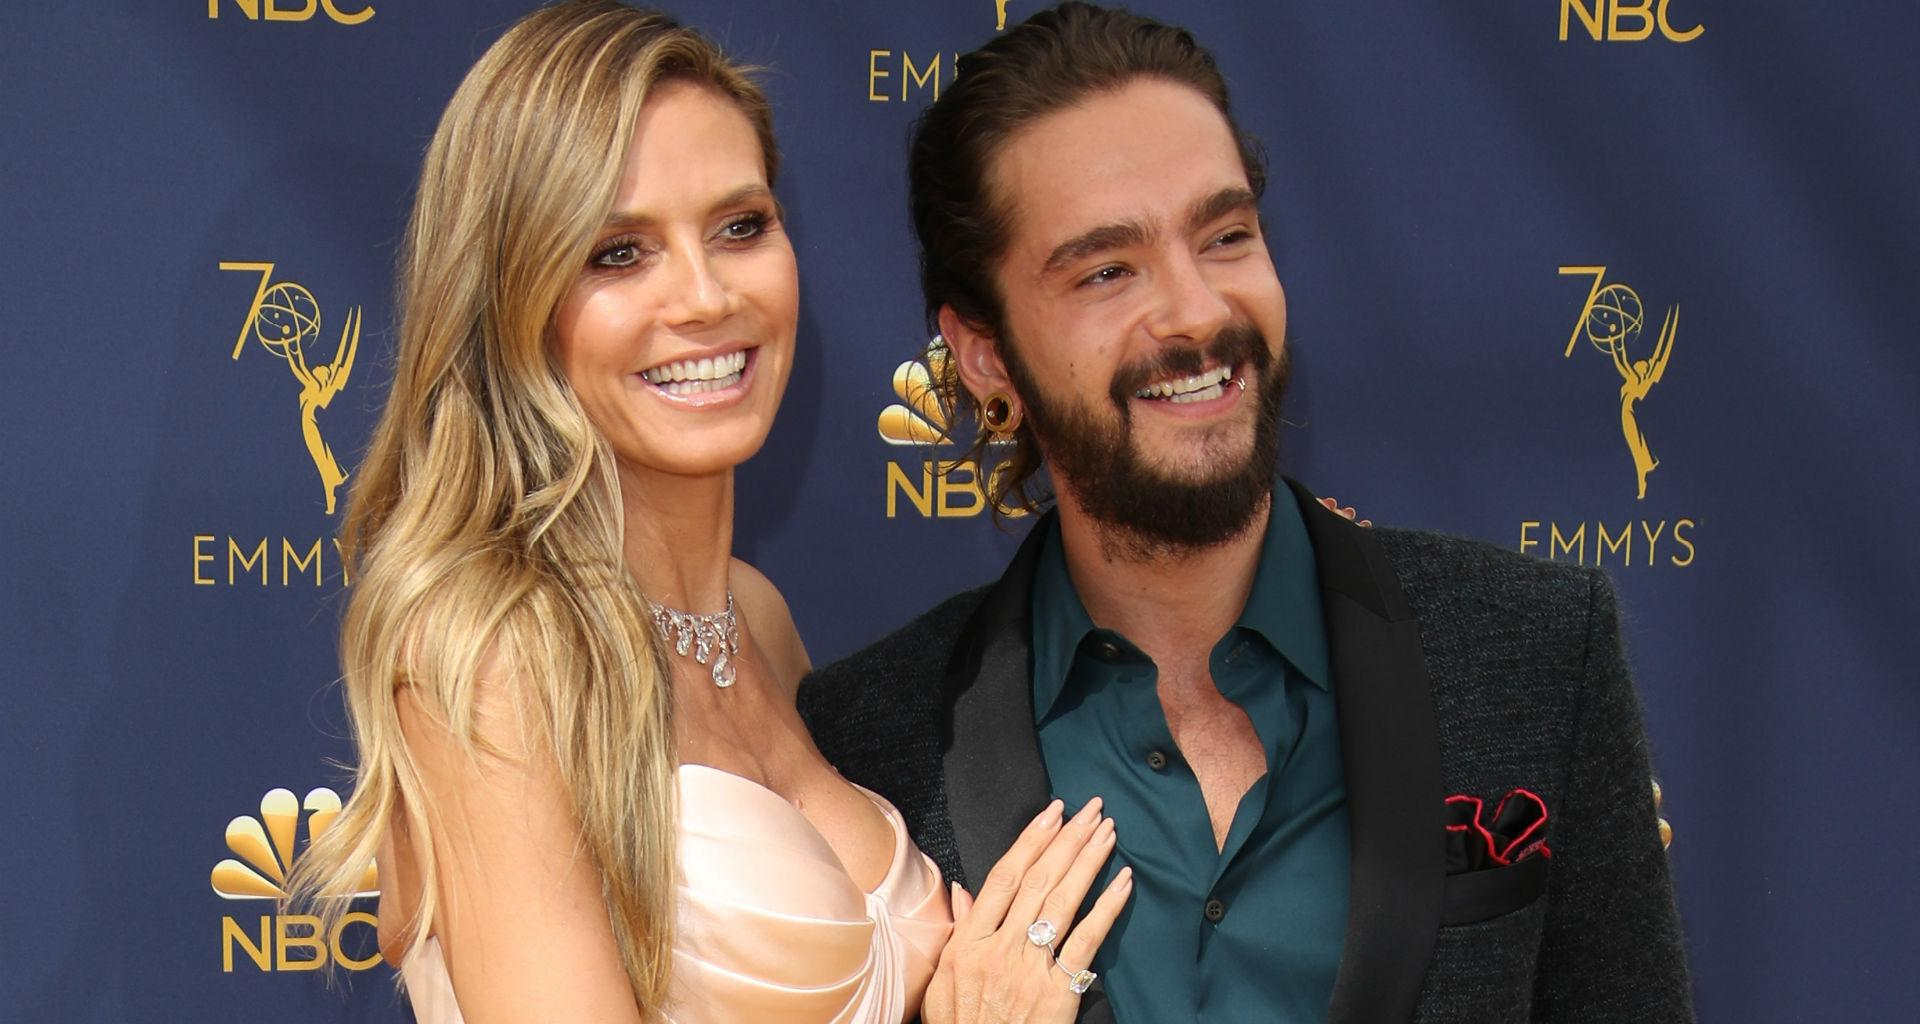 Heidi Klum And Tom Kaulitz: Inside Their Plans After The Wedding - Are Kids The Next Step?